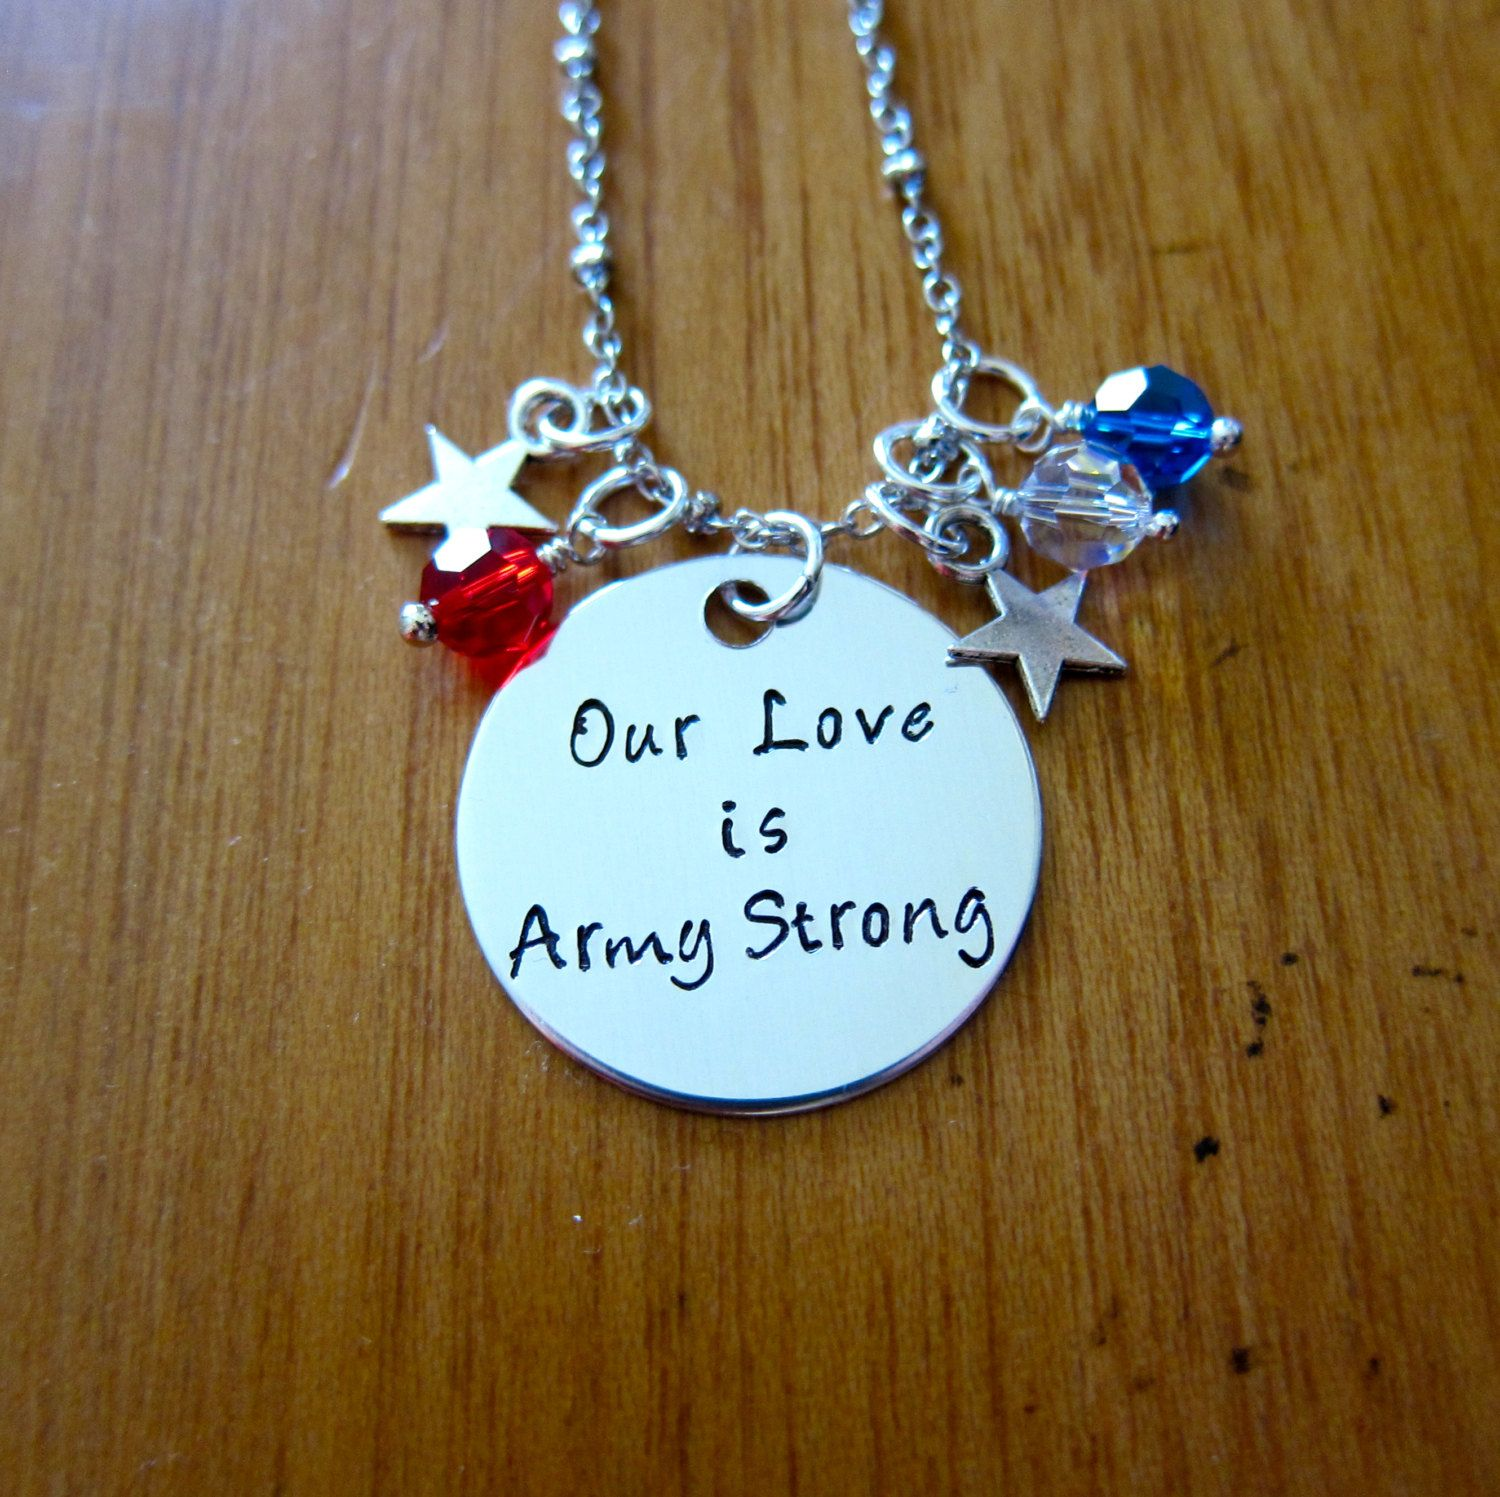 Our Love Is Army Strong Necklace. Army Wife Necklace. Army Girlfriend Necklace. USA Patriotic Military. Hand stamped  Crystals by WithLoveFromOC (item: 2016311830)